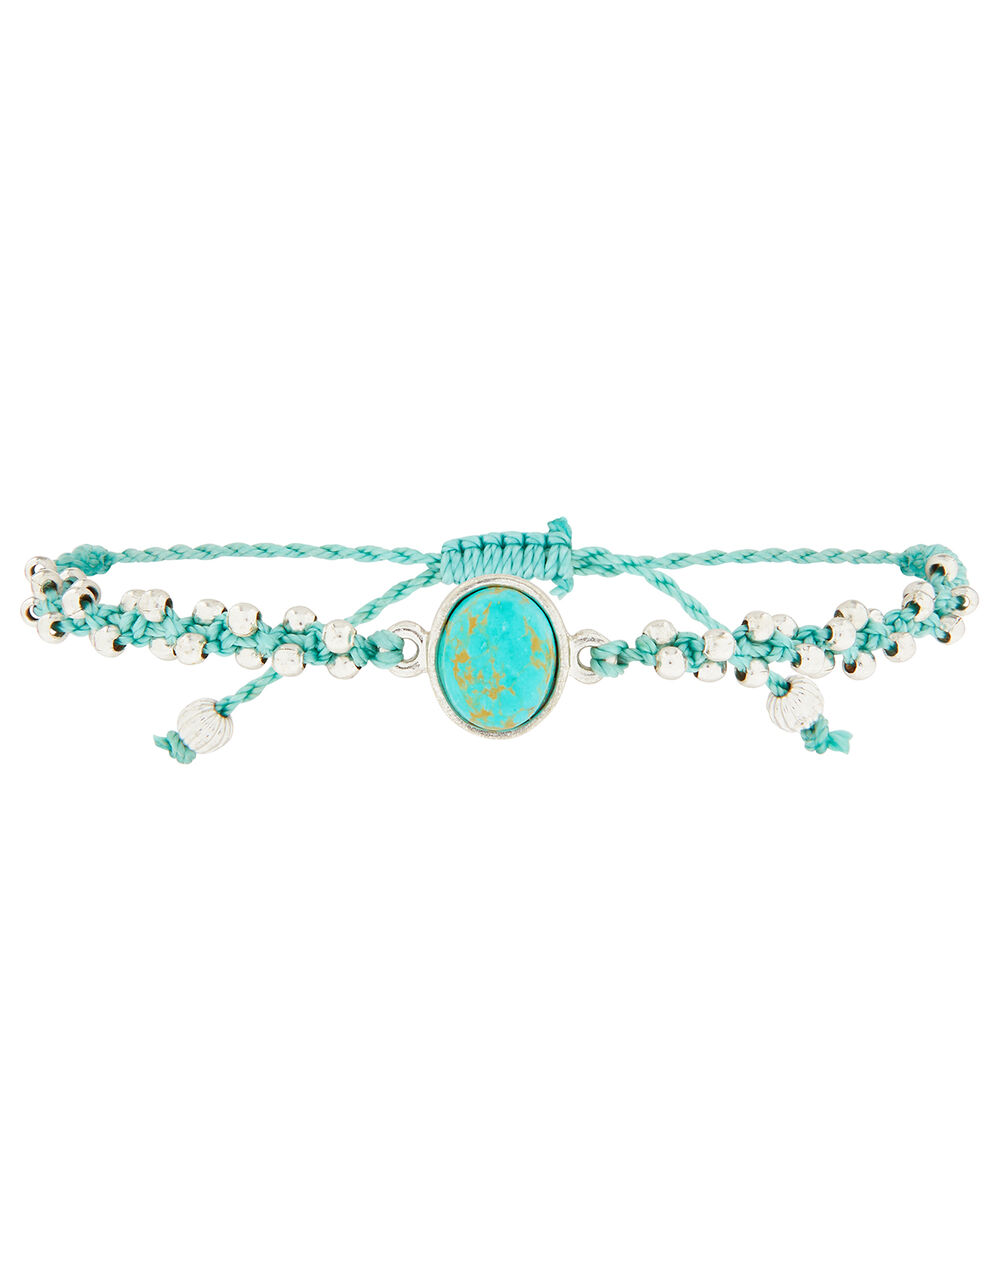 Turquoise Stone Beaded Friendship Bracelet, , large